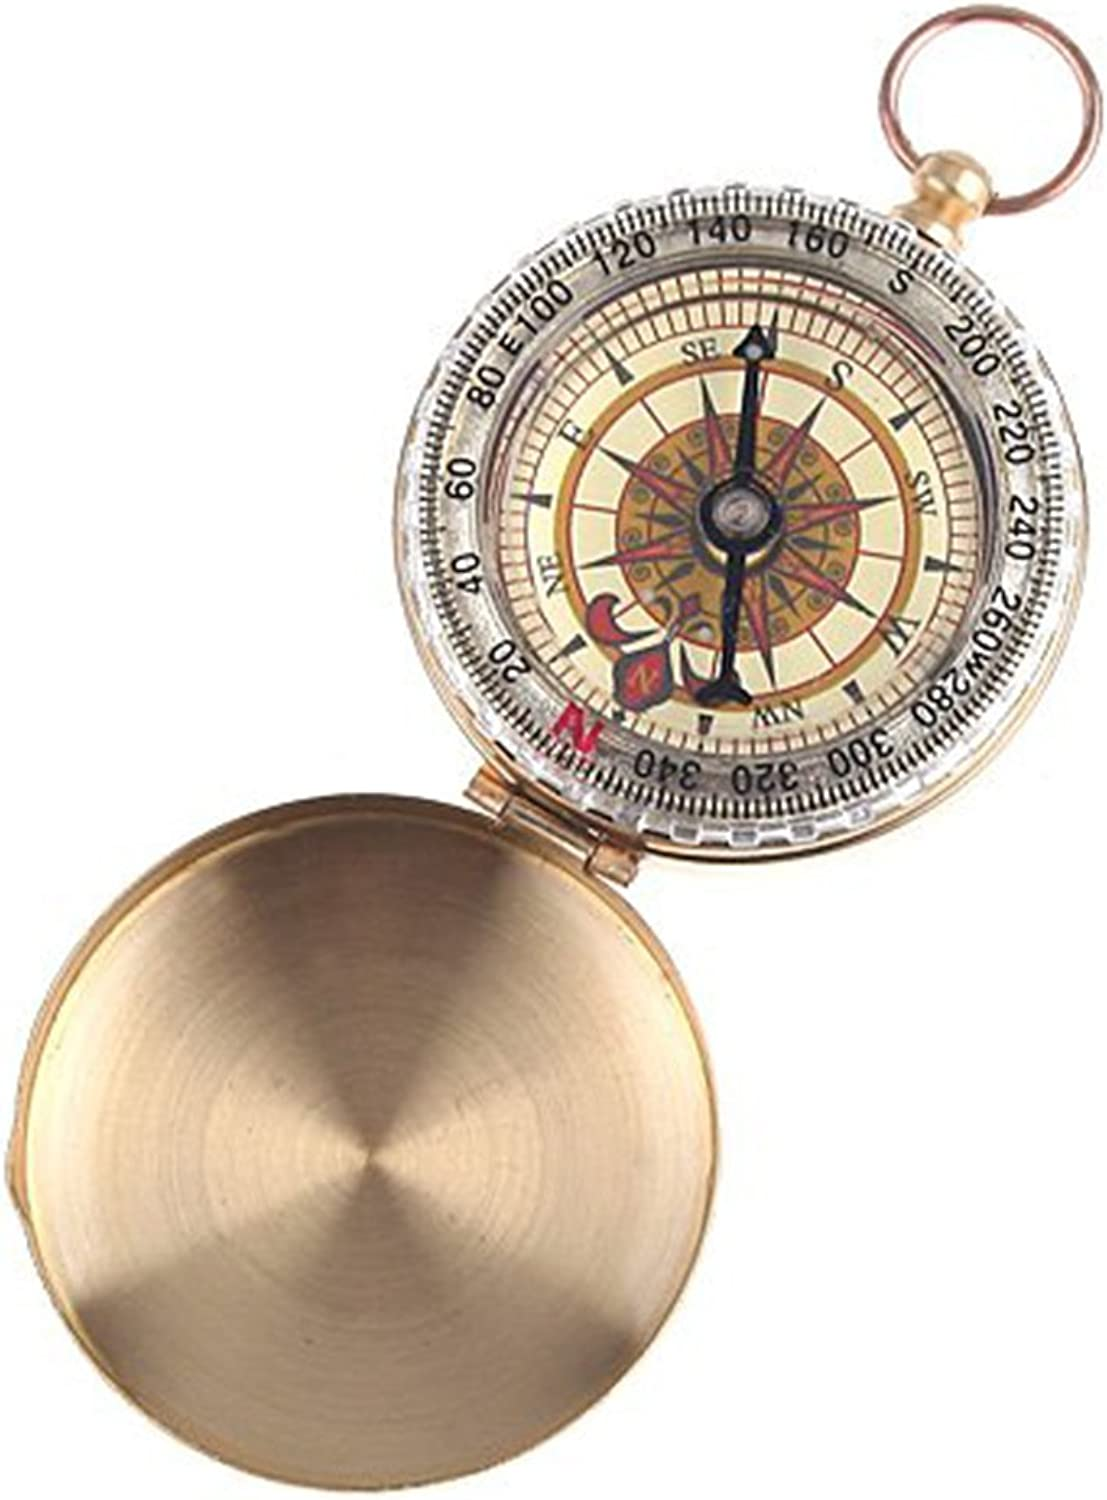 Heng Heng  Sale Old Fashion and Harmonious Classic Pocket Watch Style Bronzing Antique Camping Compass  HNGBG000441